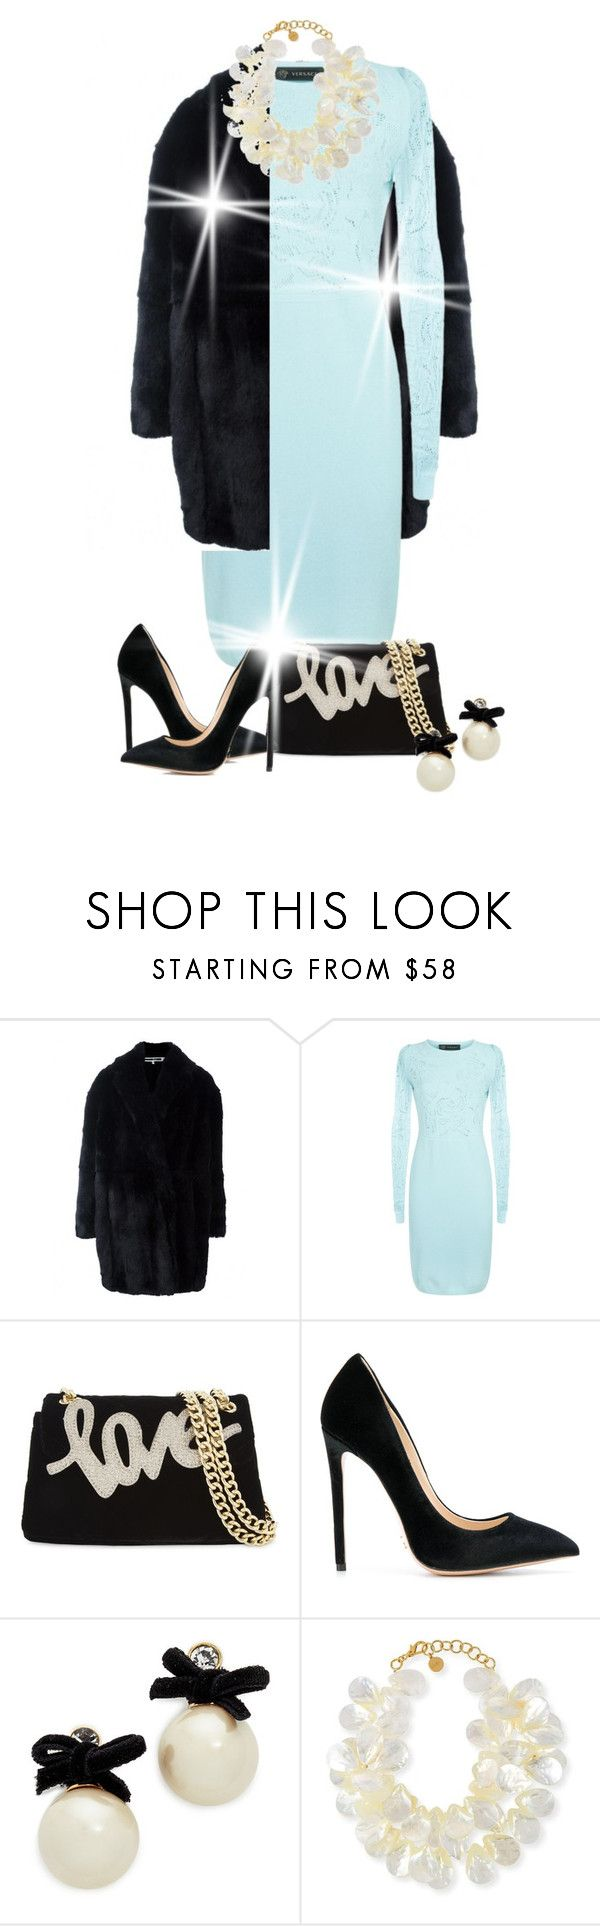 """""""#PolyPresents: Wish List"""" by shamrockclover ❤ liked on Polyvore featuring McQ by Alexander McQueen, Versace, Kurt Geiger, Gianni Renzi, Kate Spade, NEST Jewelry, contestentry and polyPresents"""